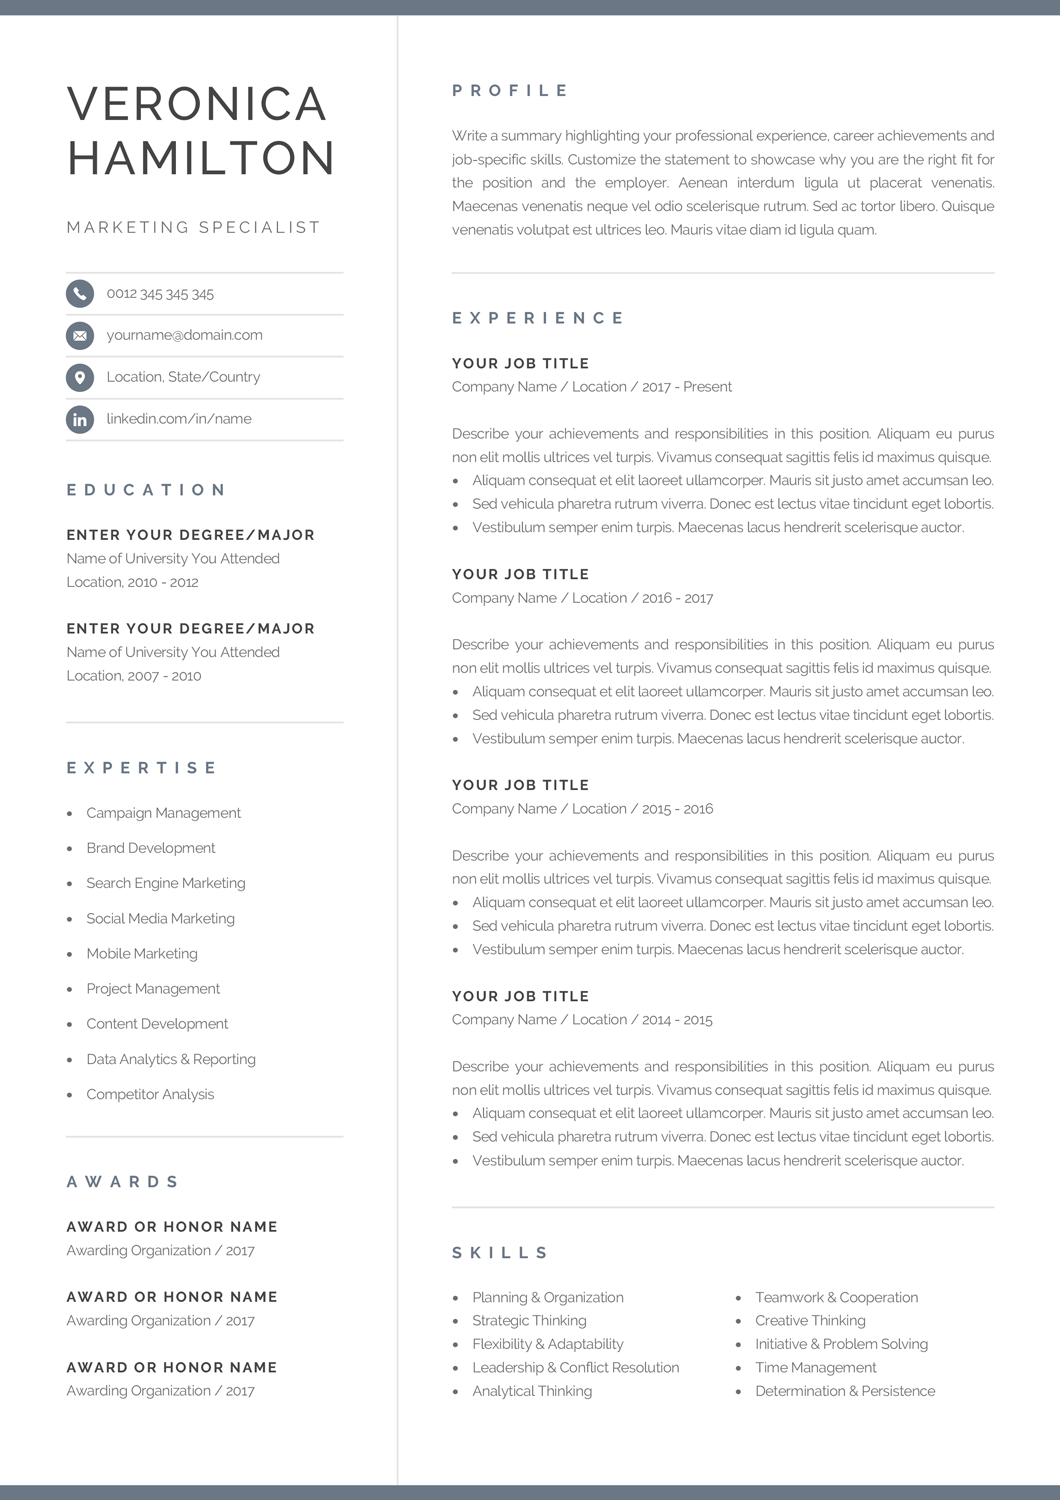 Professional Resume Template Compact 1 Page Resume